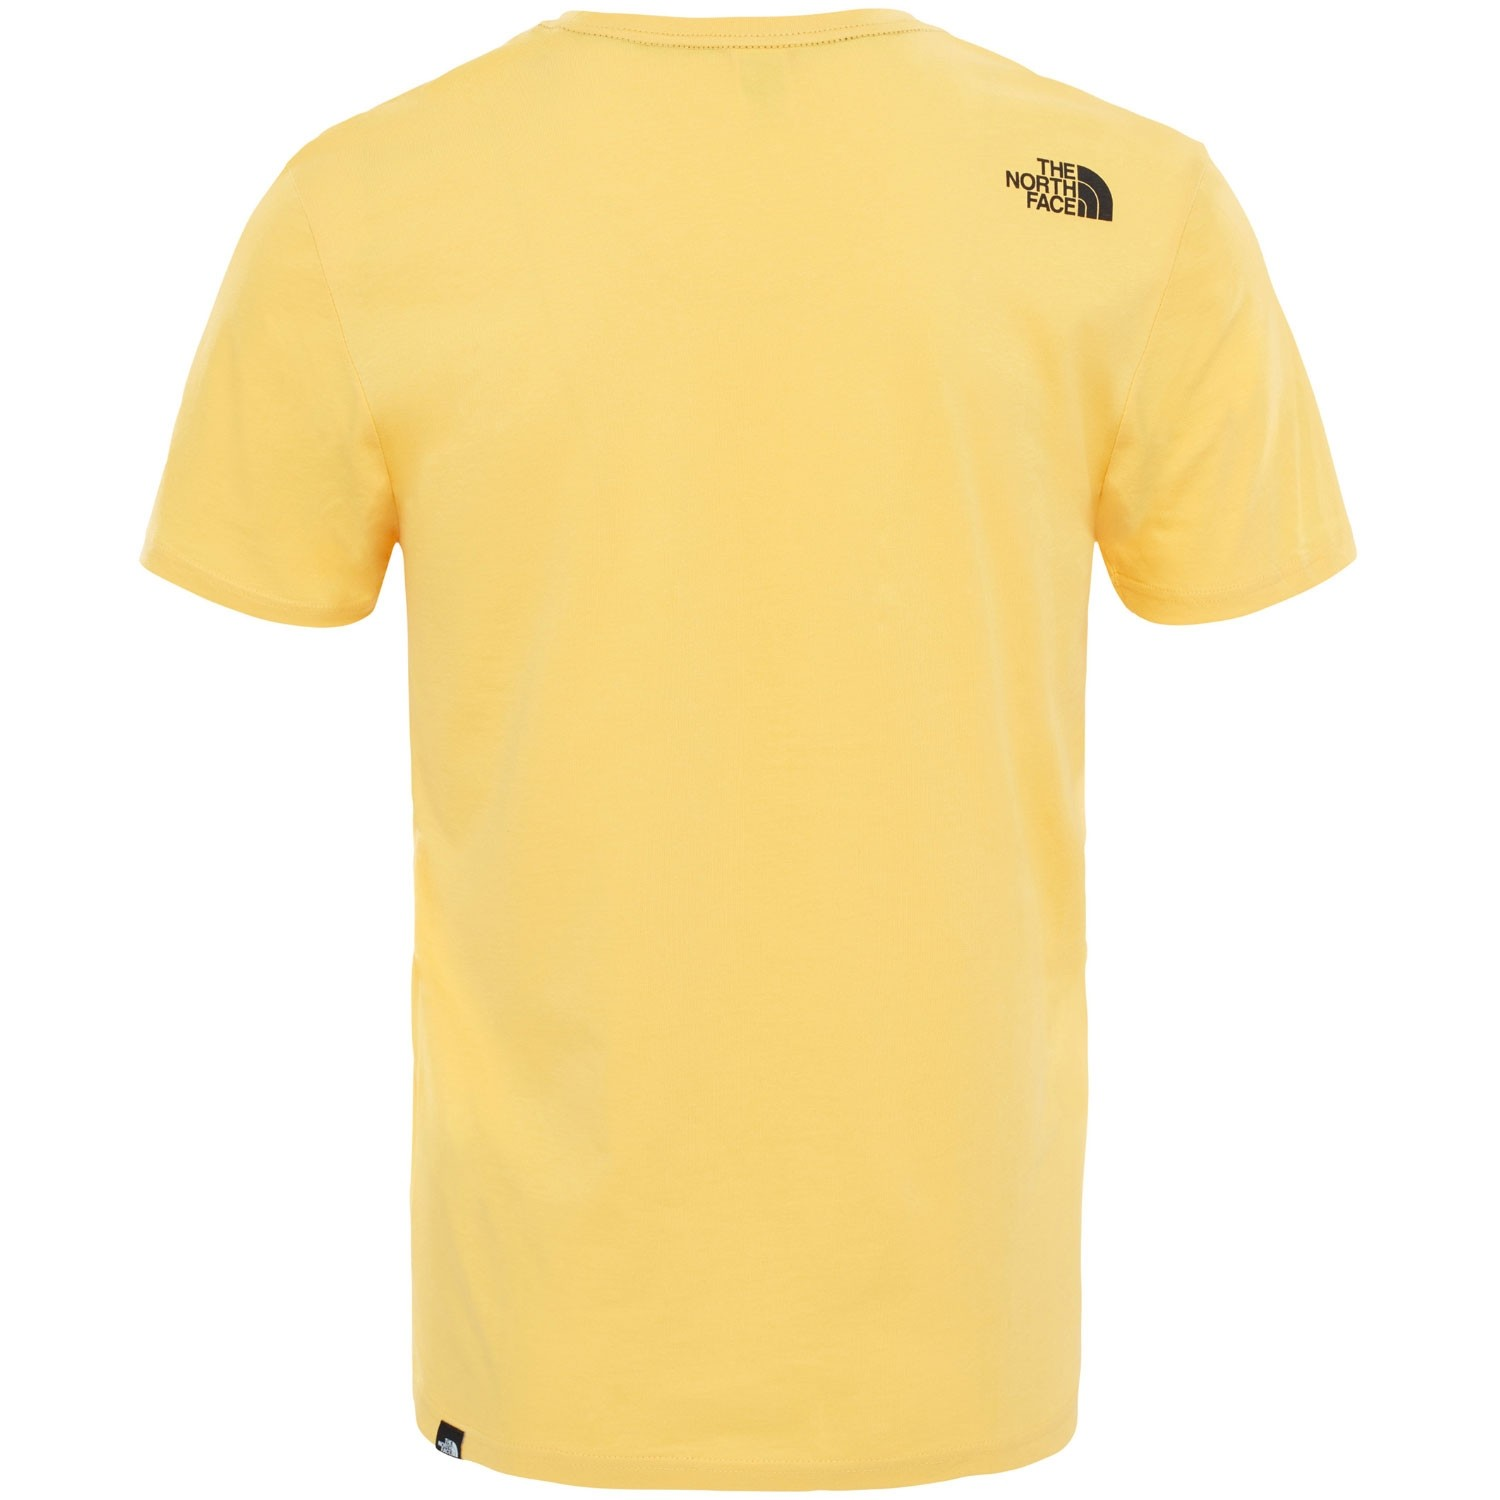 The North Face Fine SS Tee - TNF Yellow